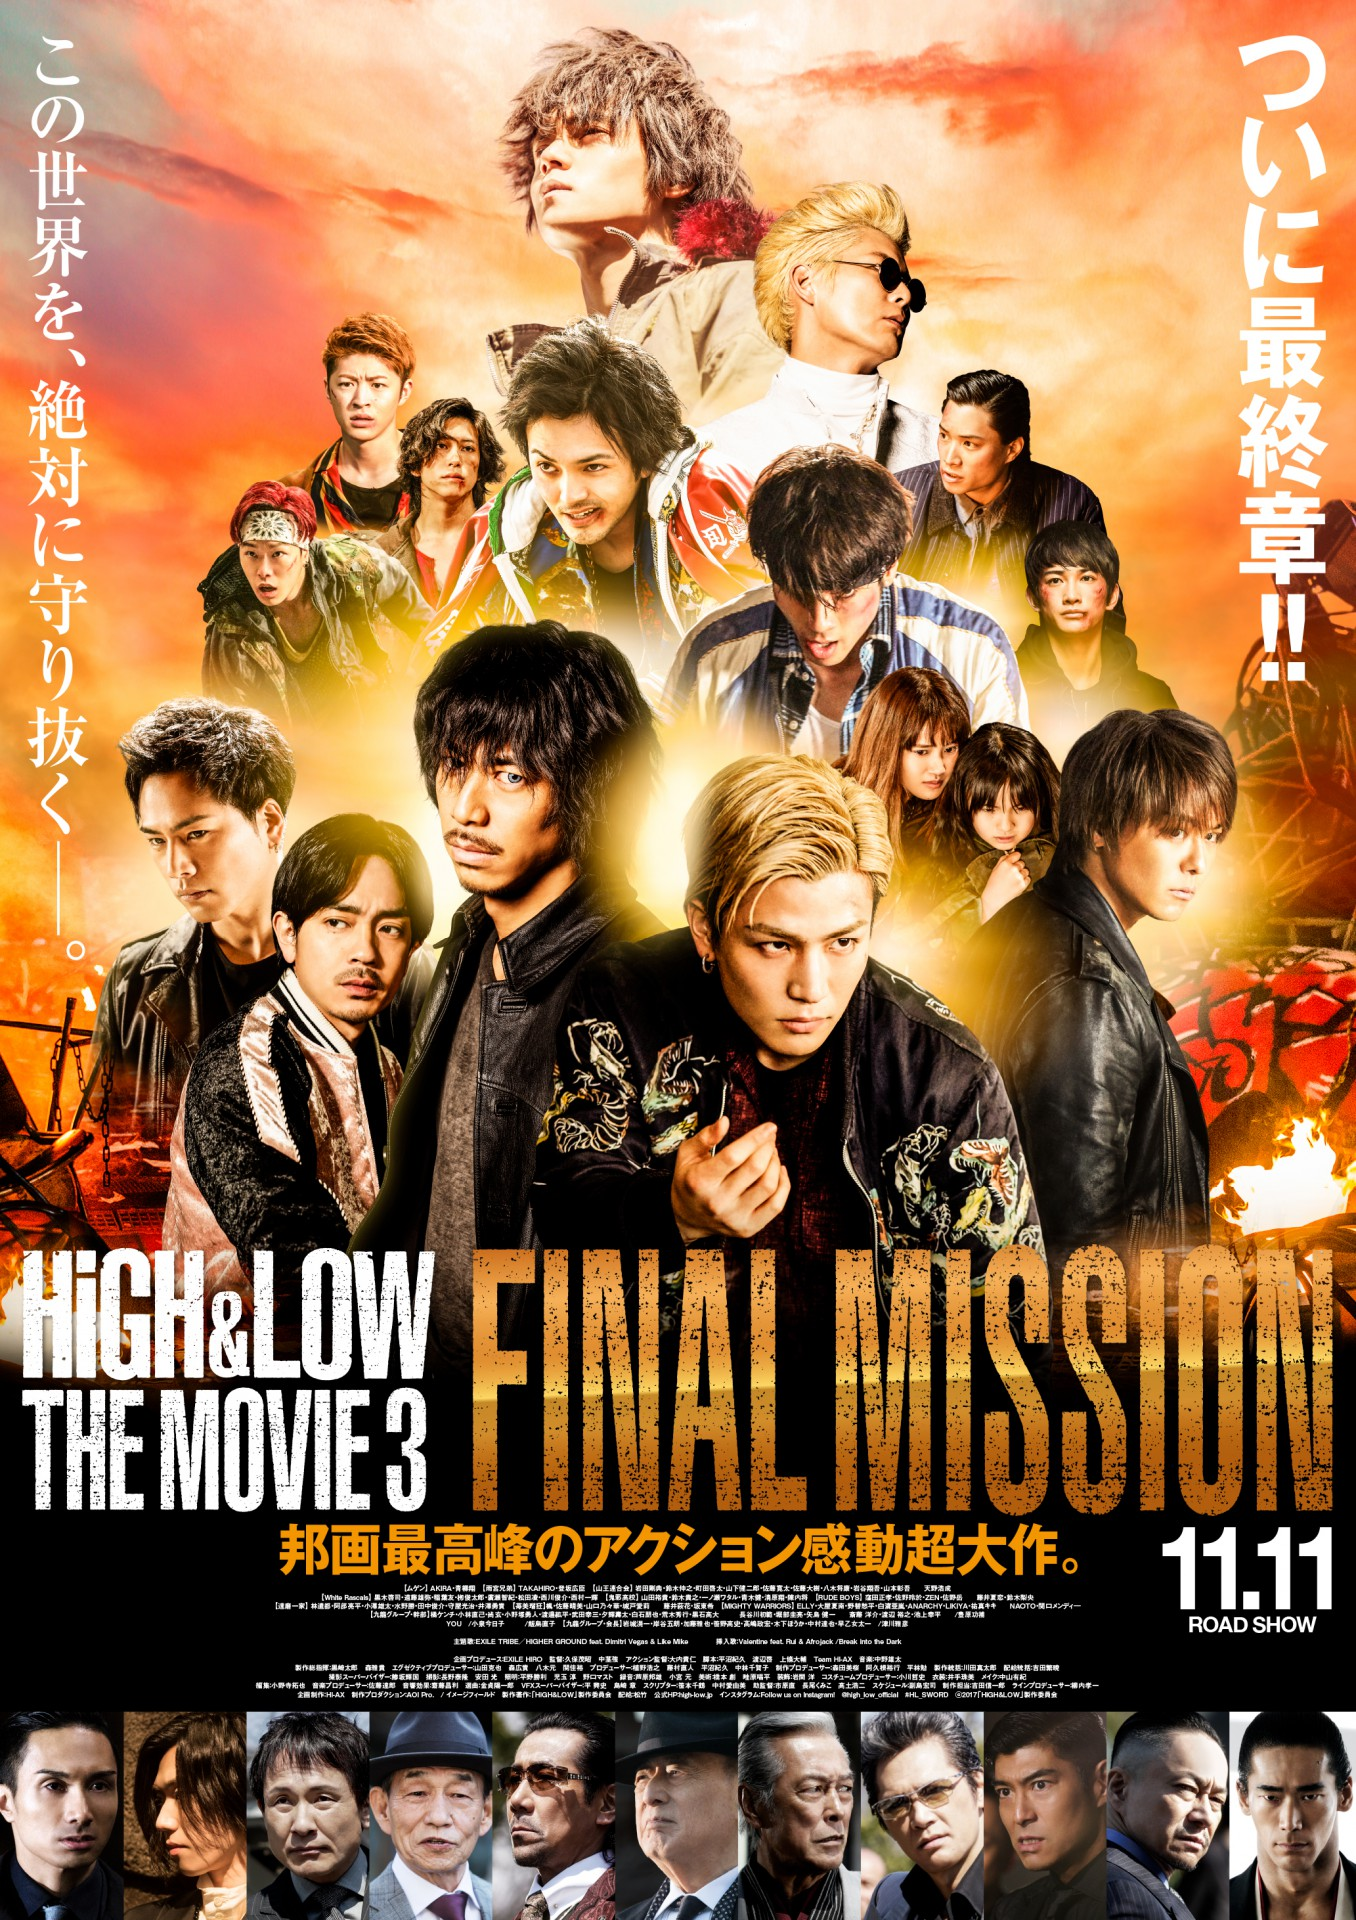 HiGH&LOW THE MOVIE 3 / FINAL MISSION